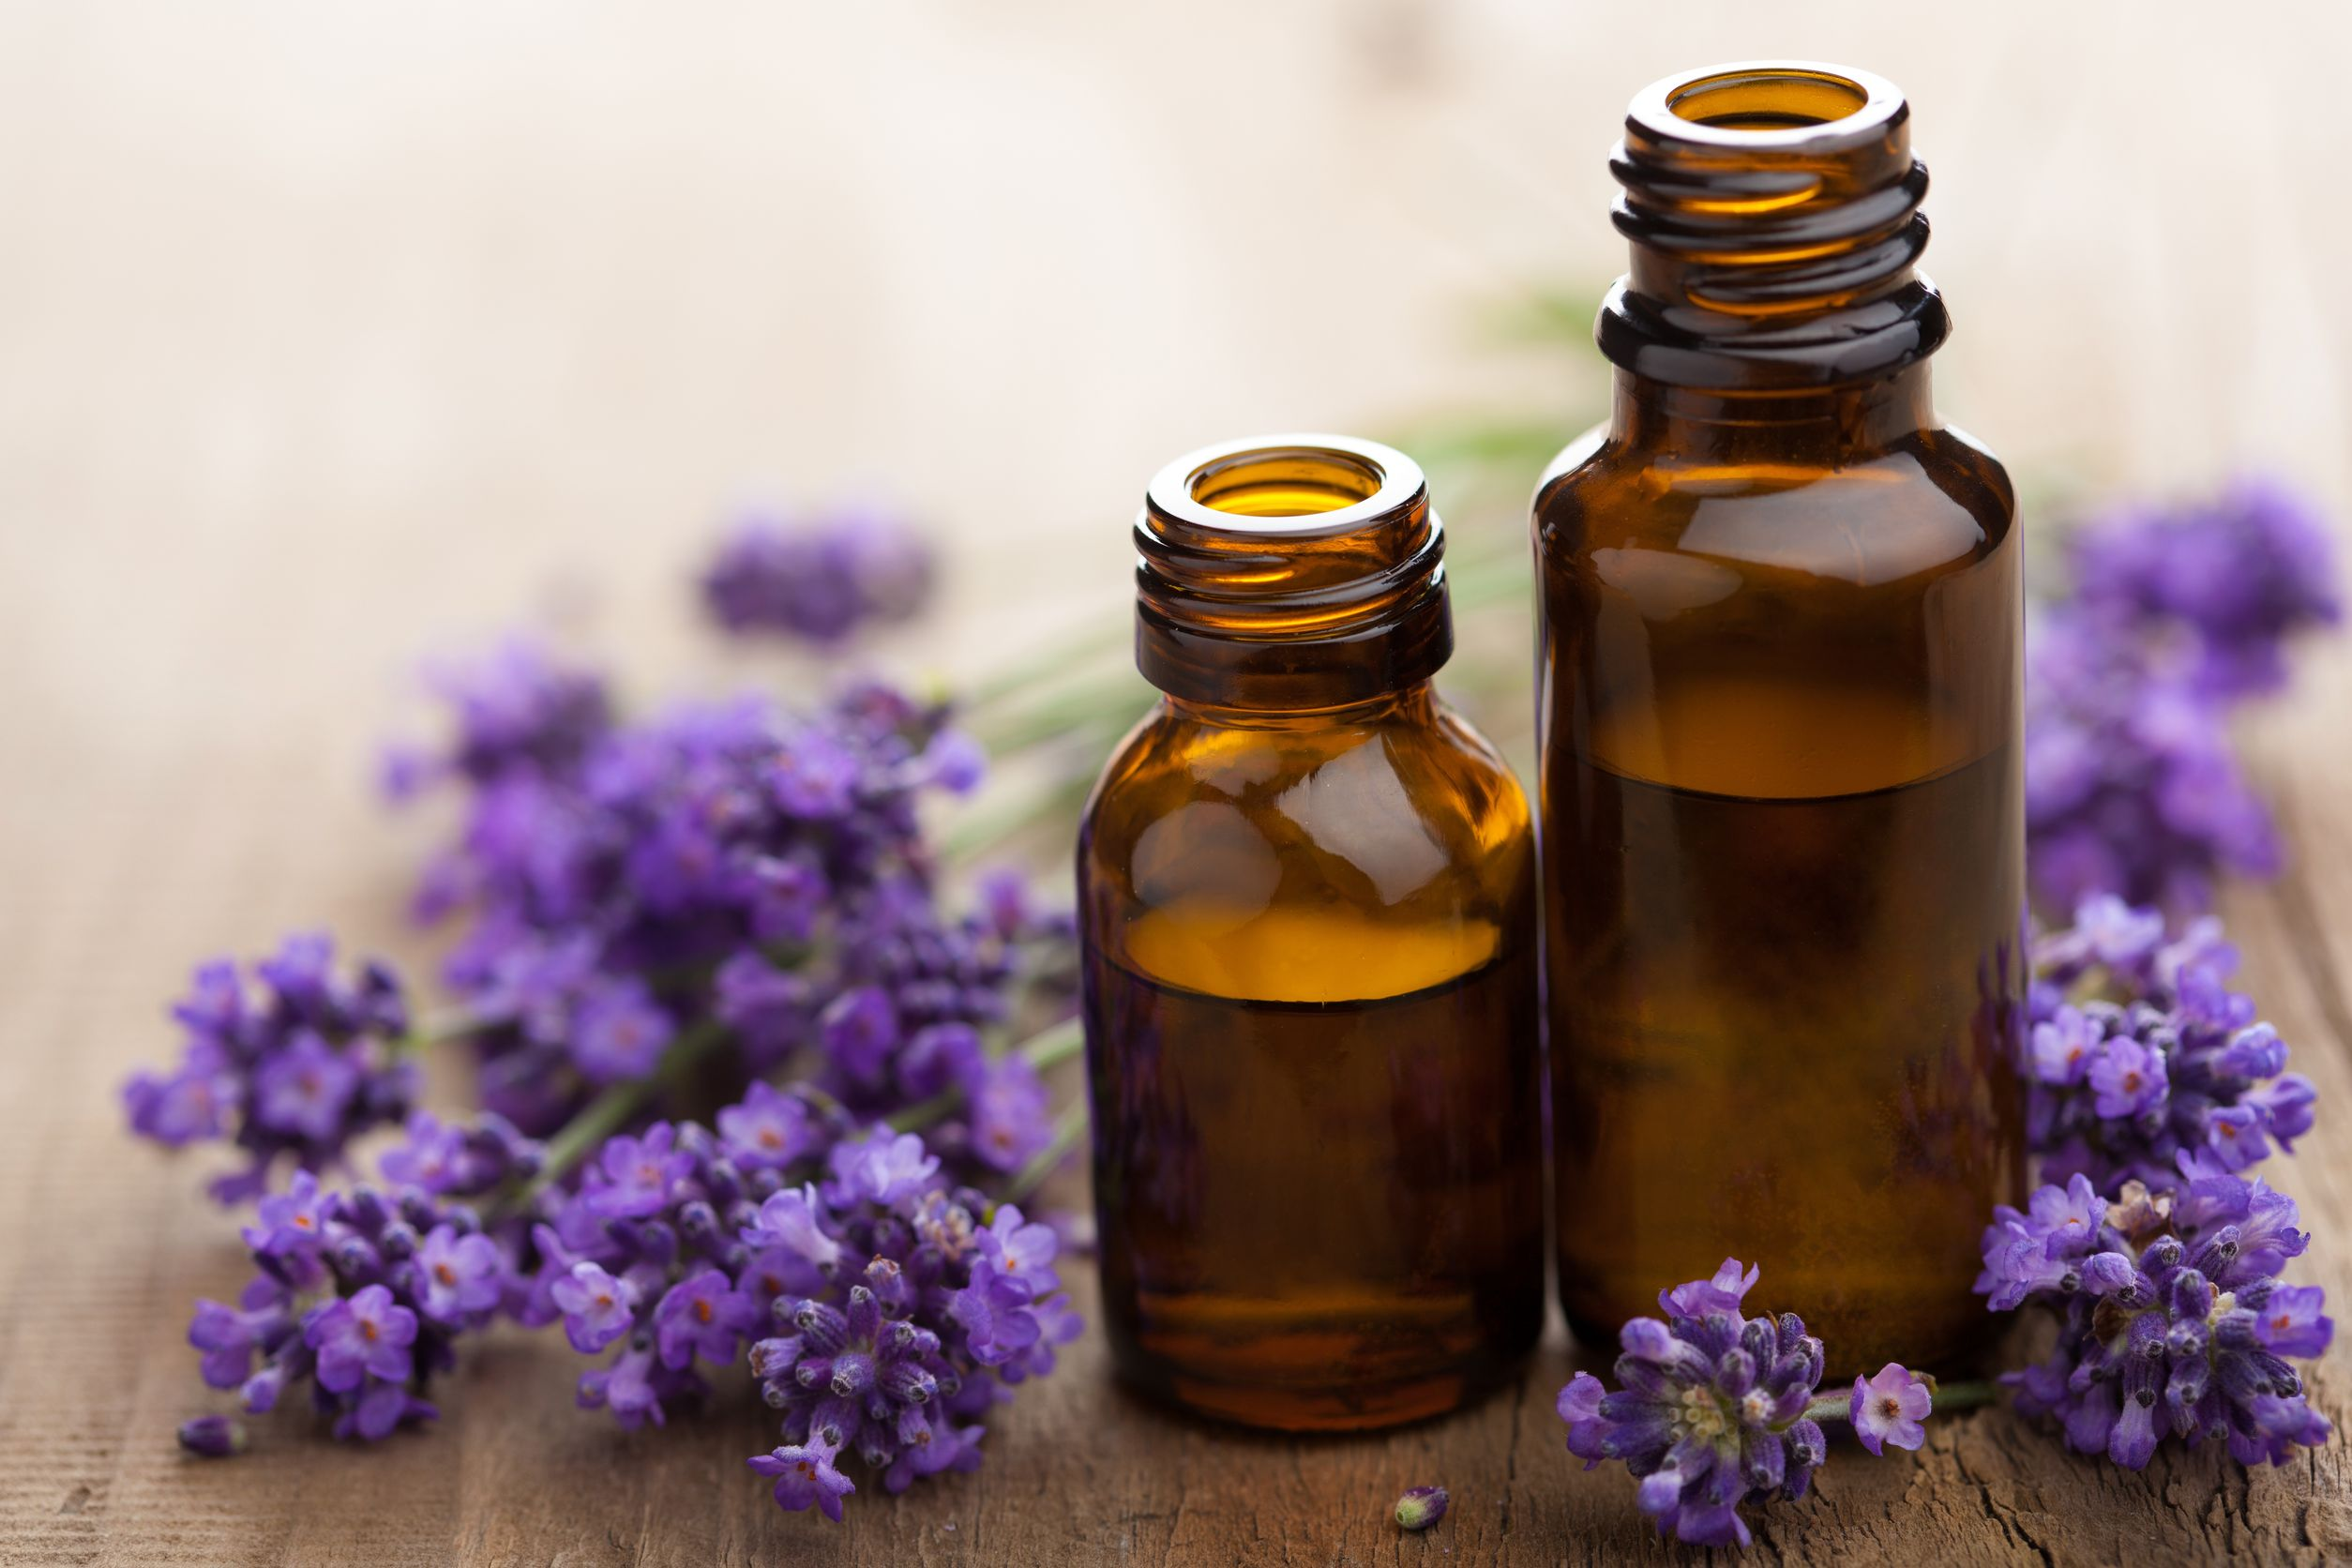 15163126 – essential oil and lavender flowers